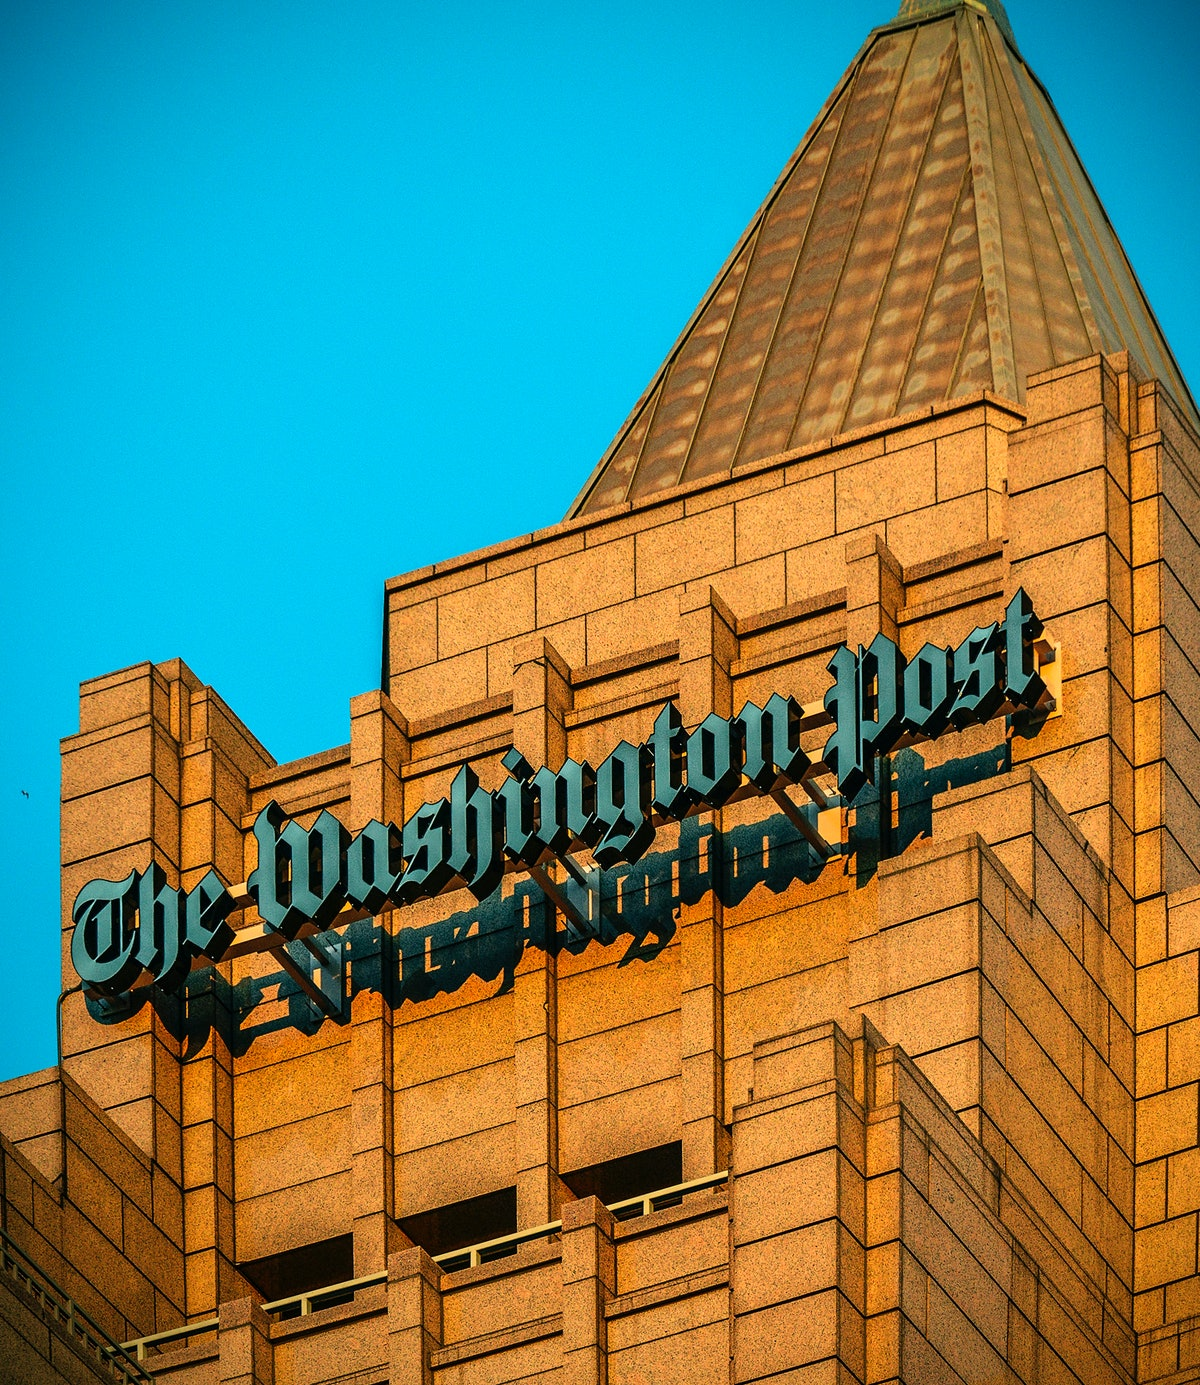 WASHINGTON, DC - DECEMBER 16: The exterior of The Washington Post via Getty Images building at One F...